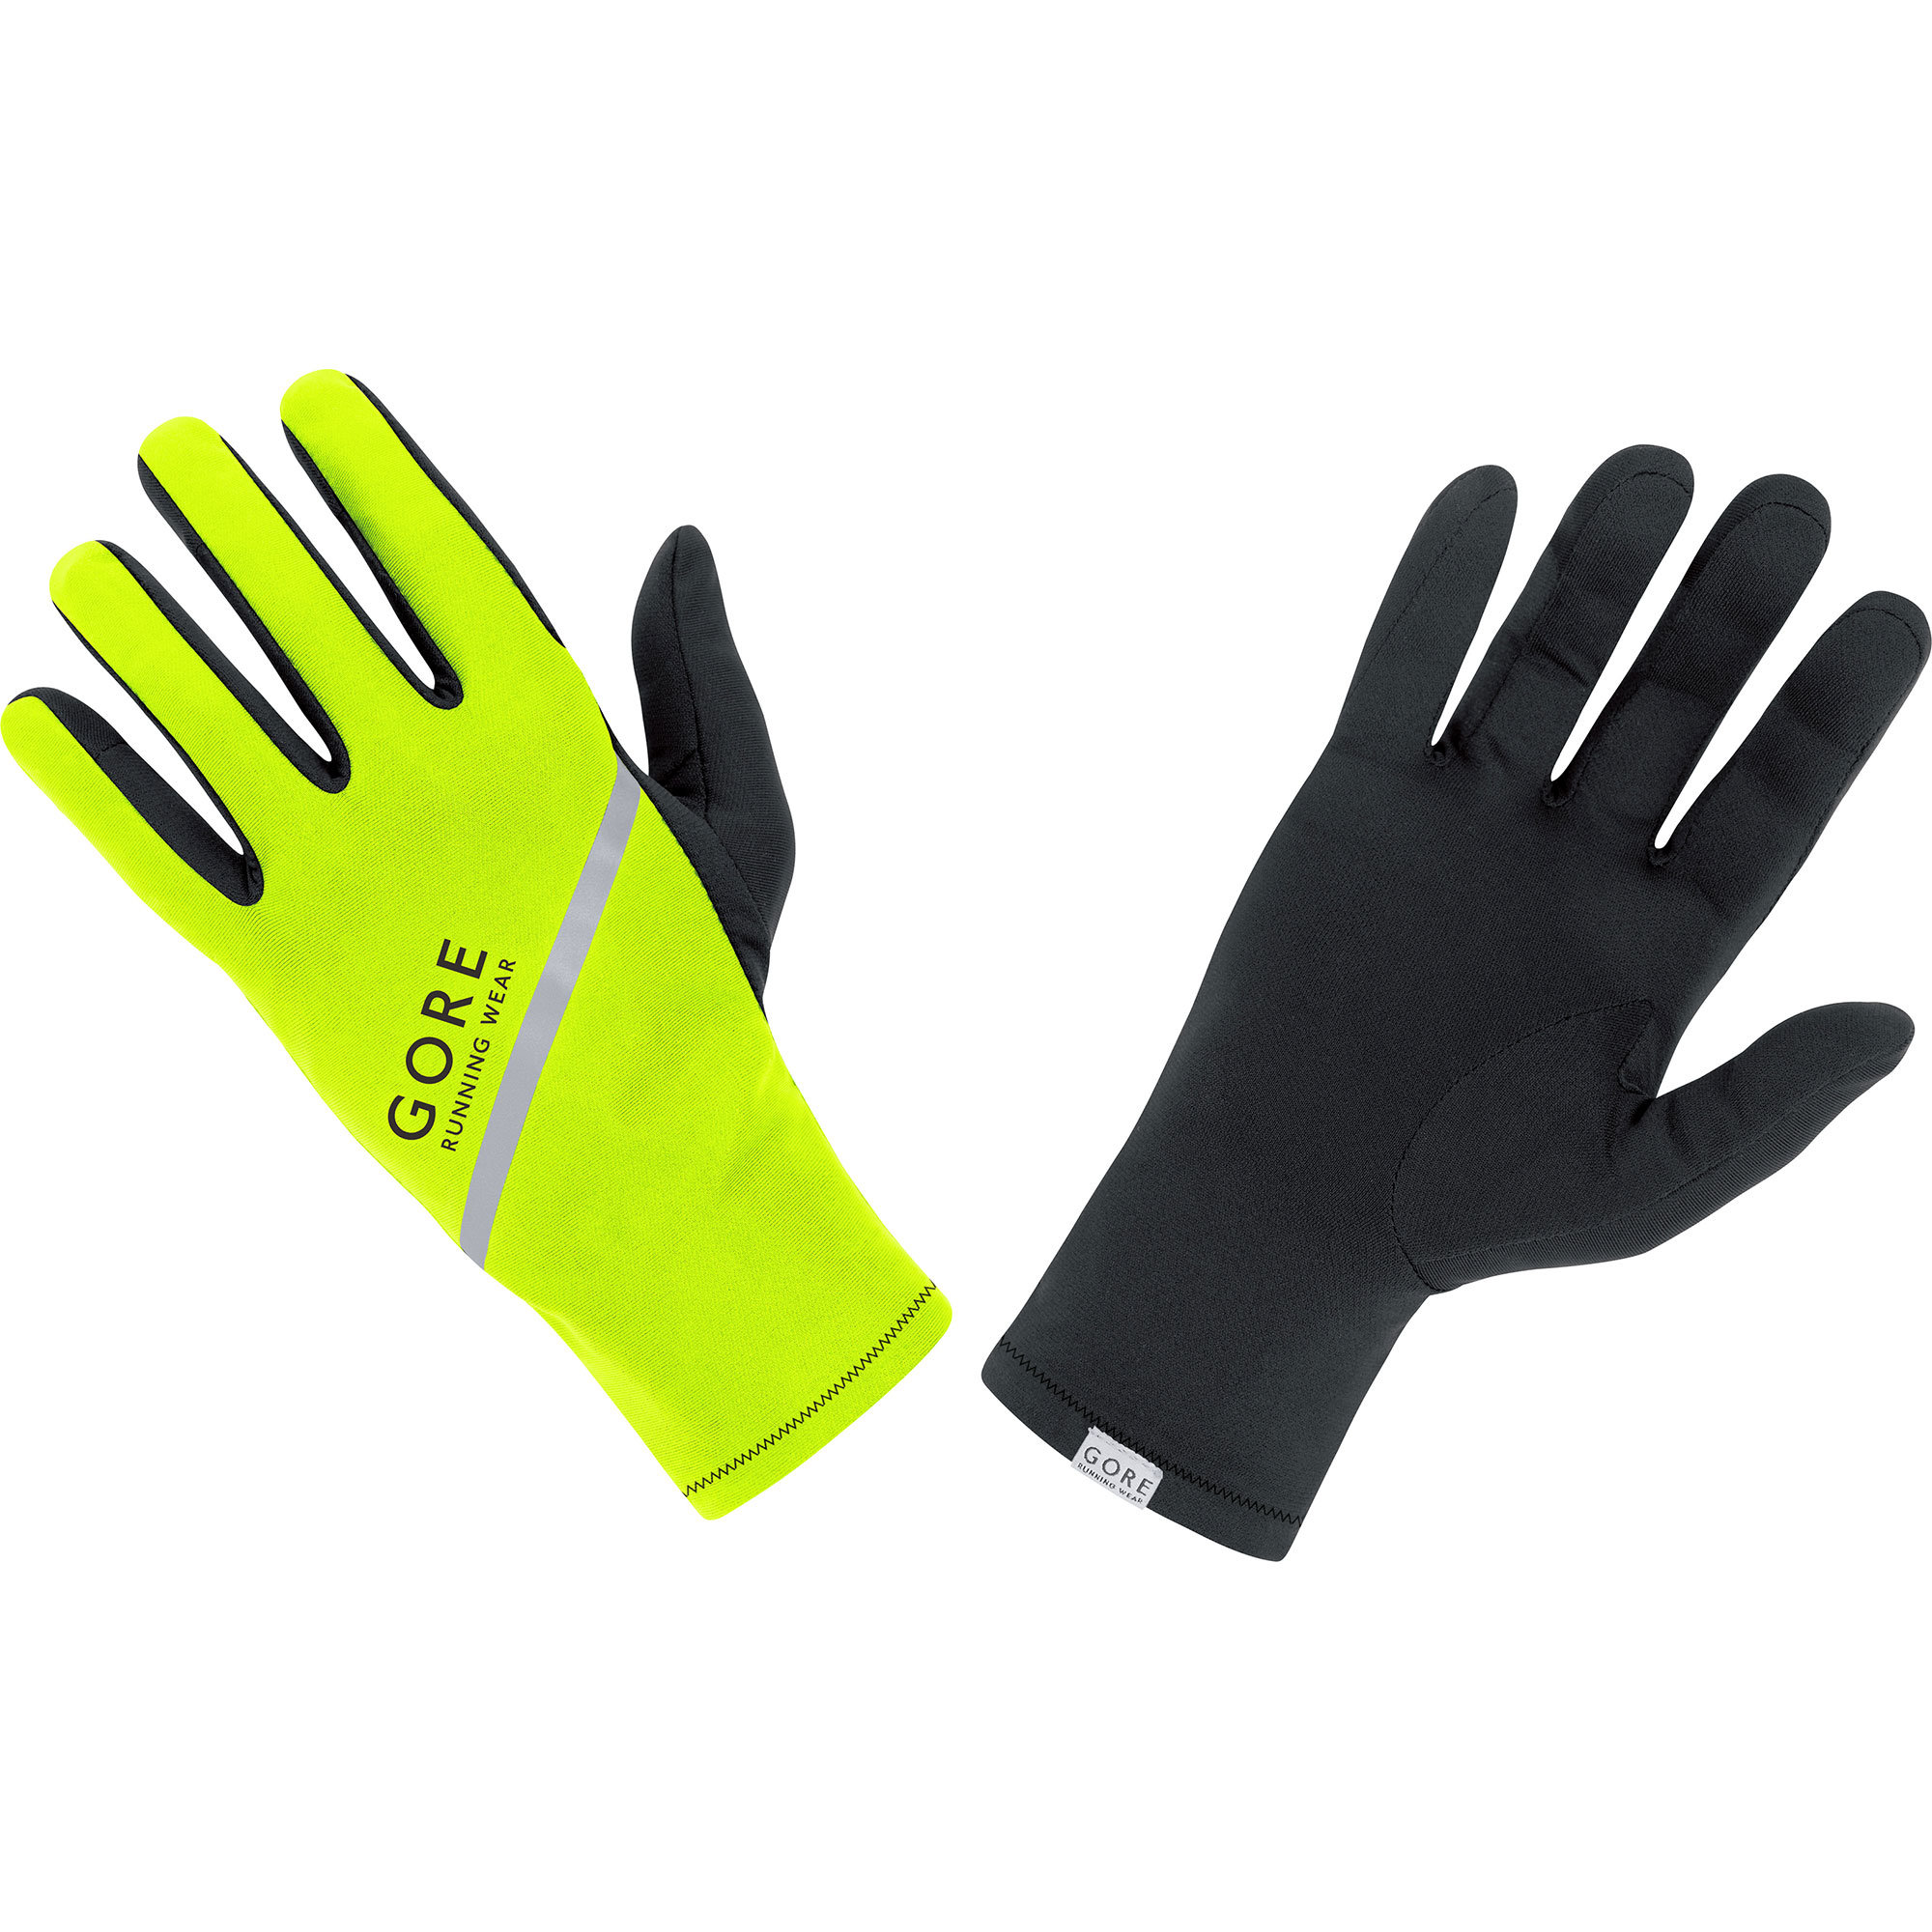 Gore Essential Light Gloves (Neon Gelb Schwarz)